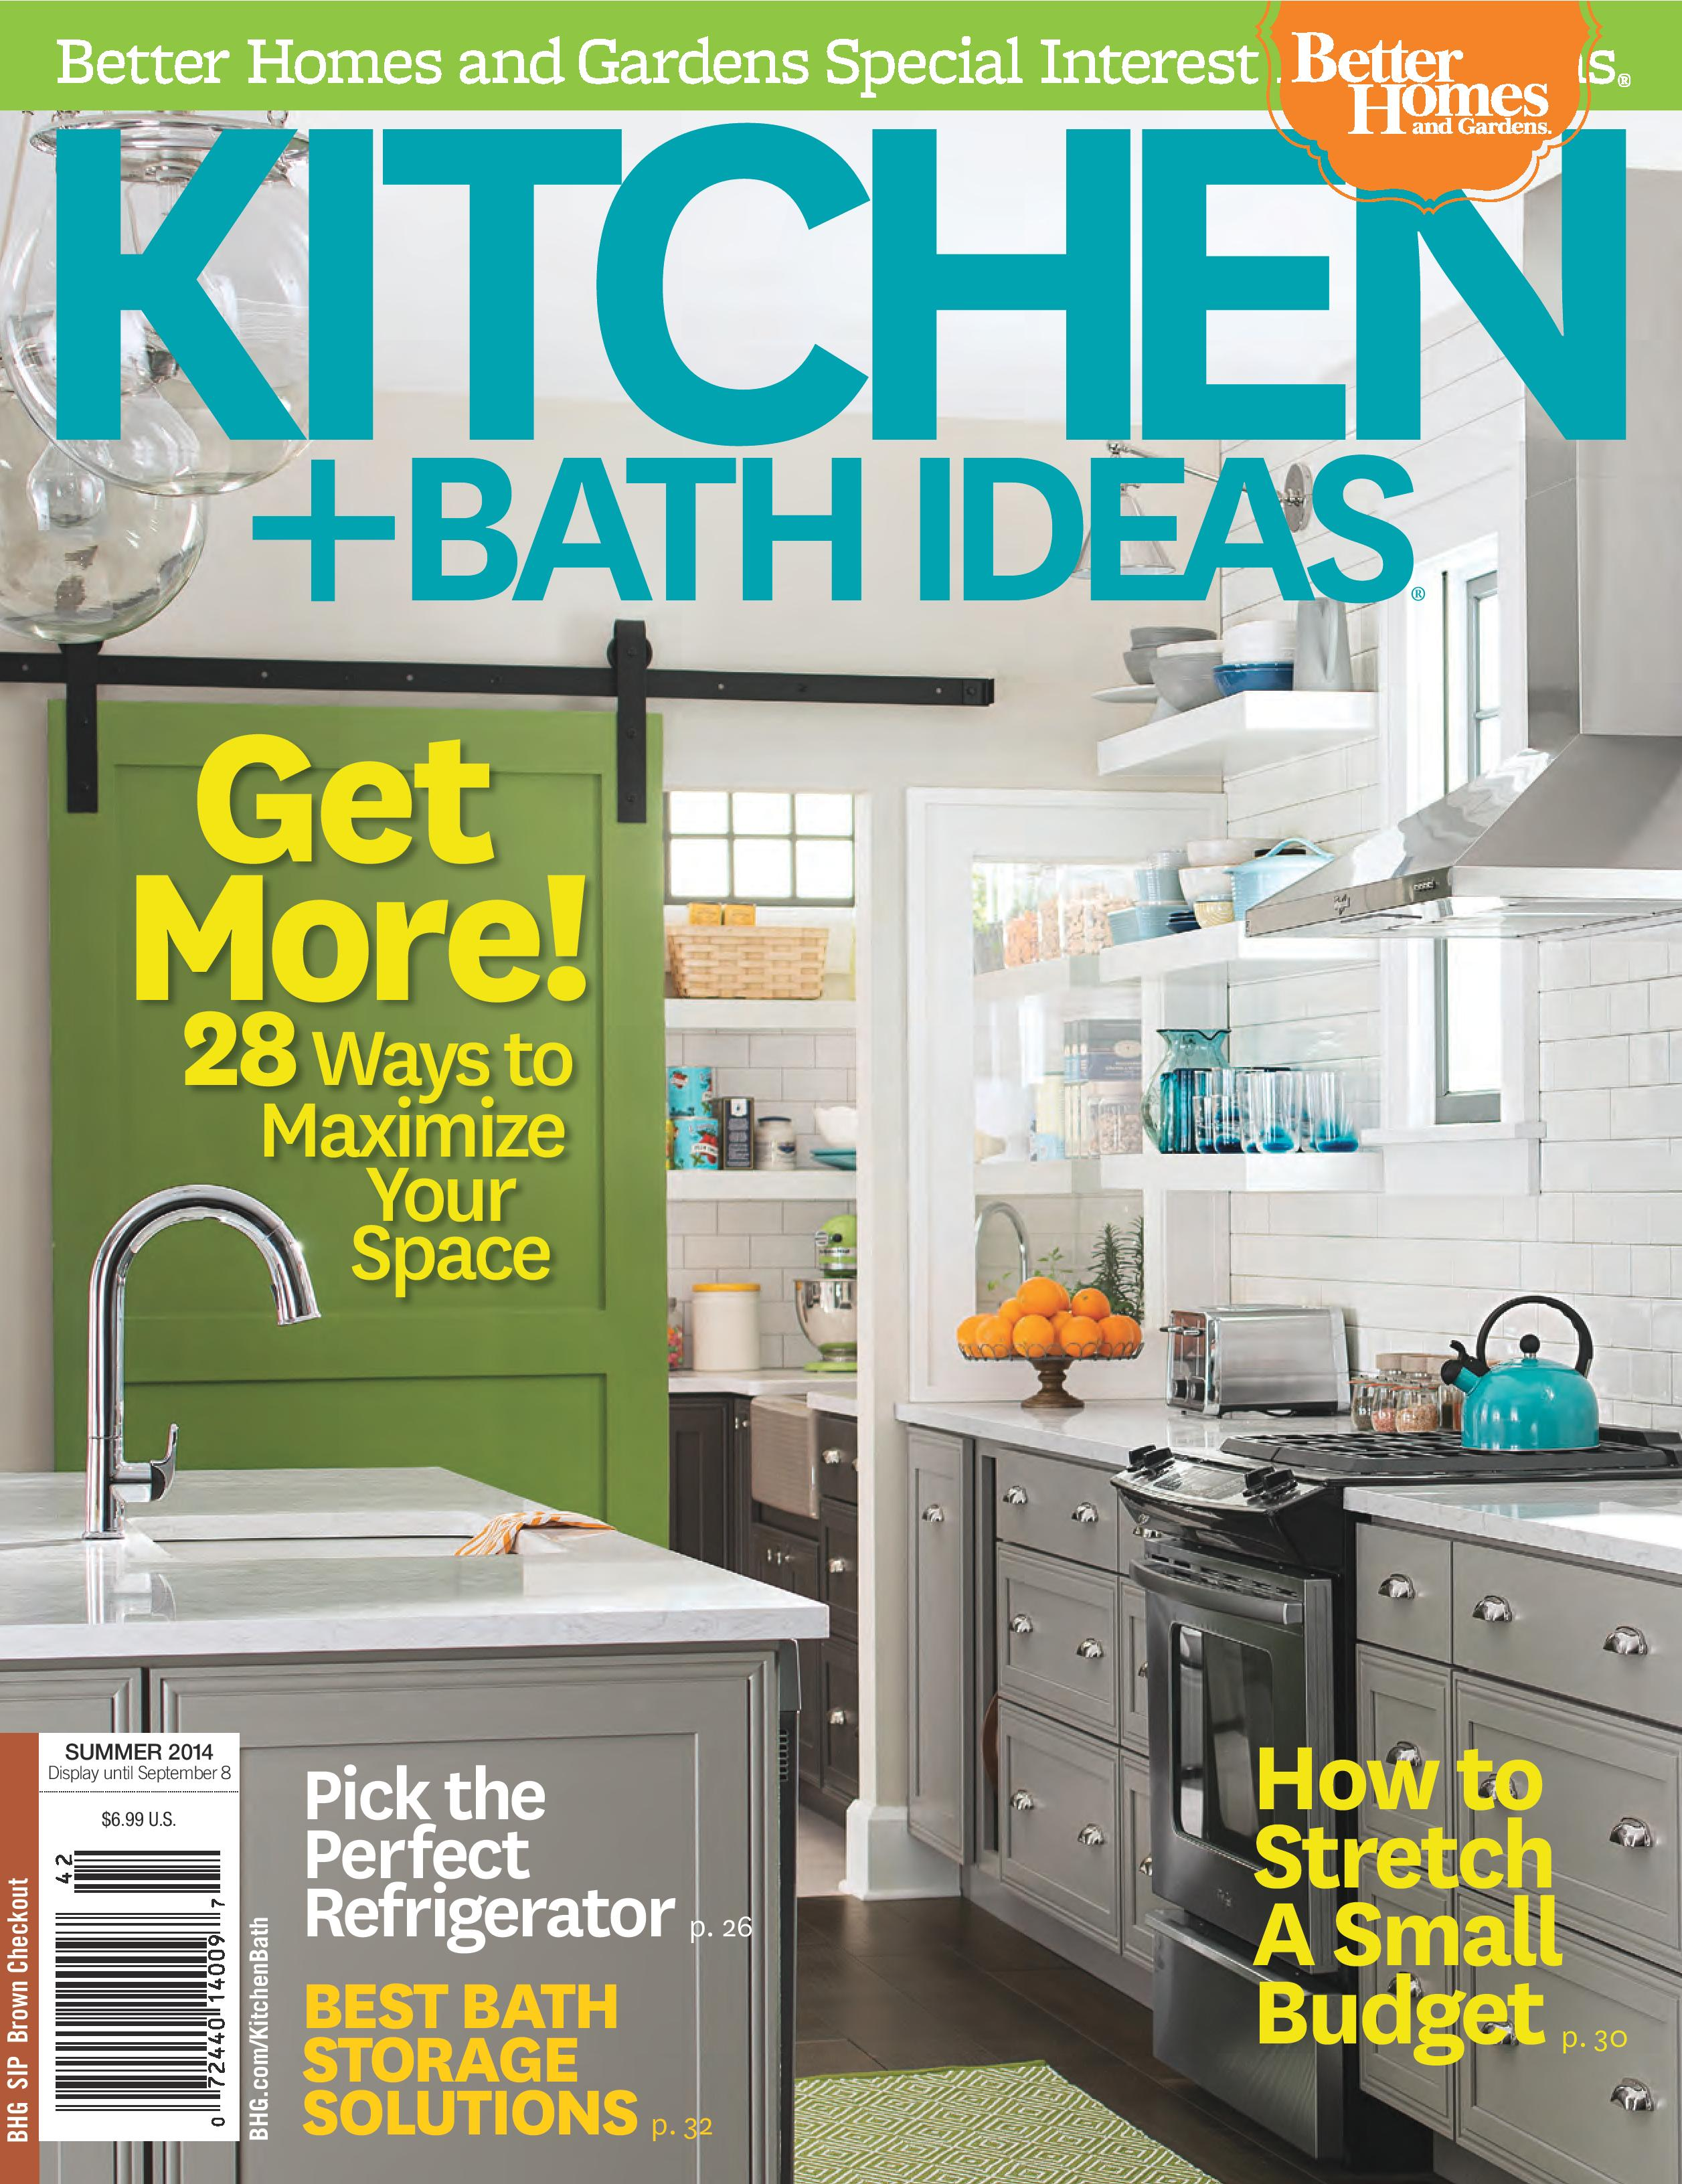 5-press_-_kitchen_and_bath_ideas_magazine-page-001 (1)